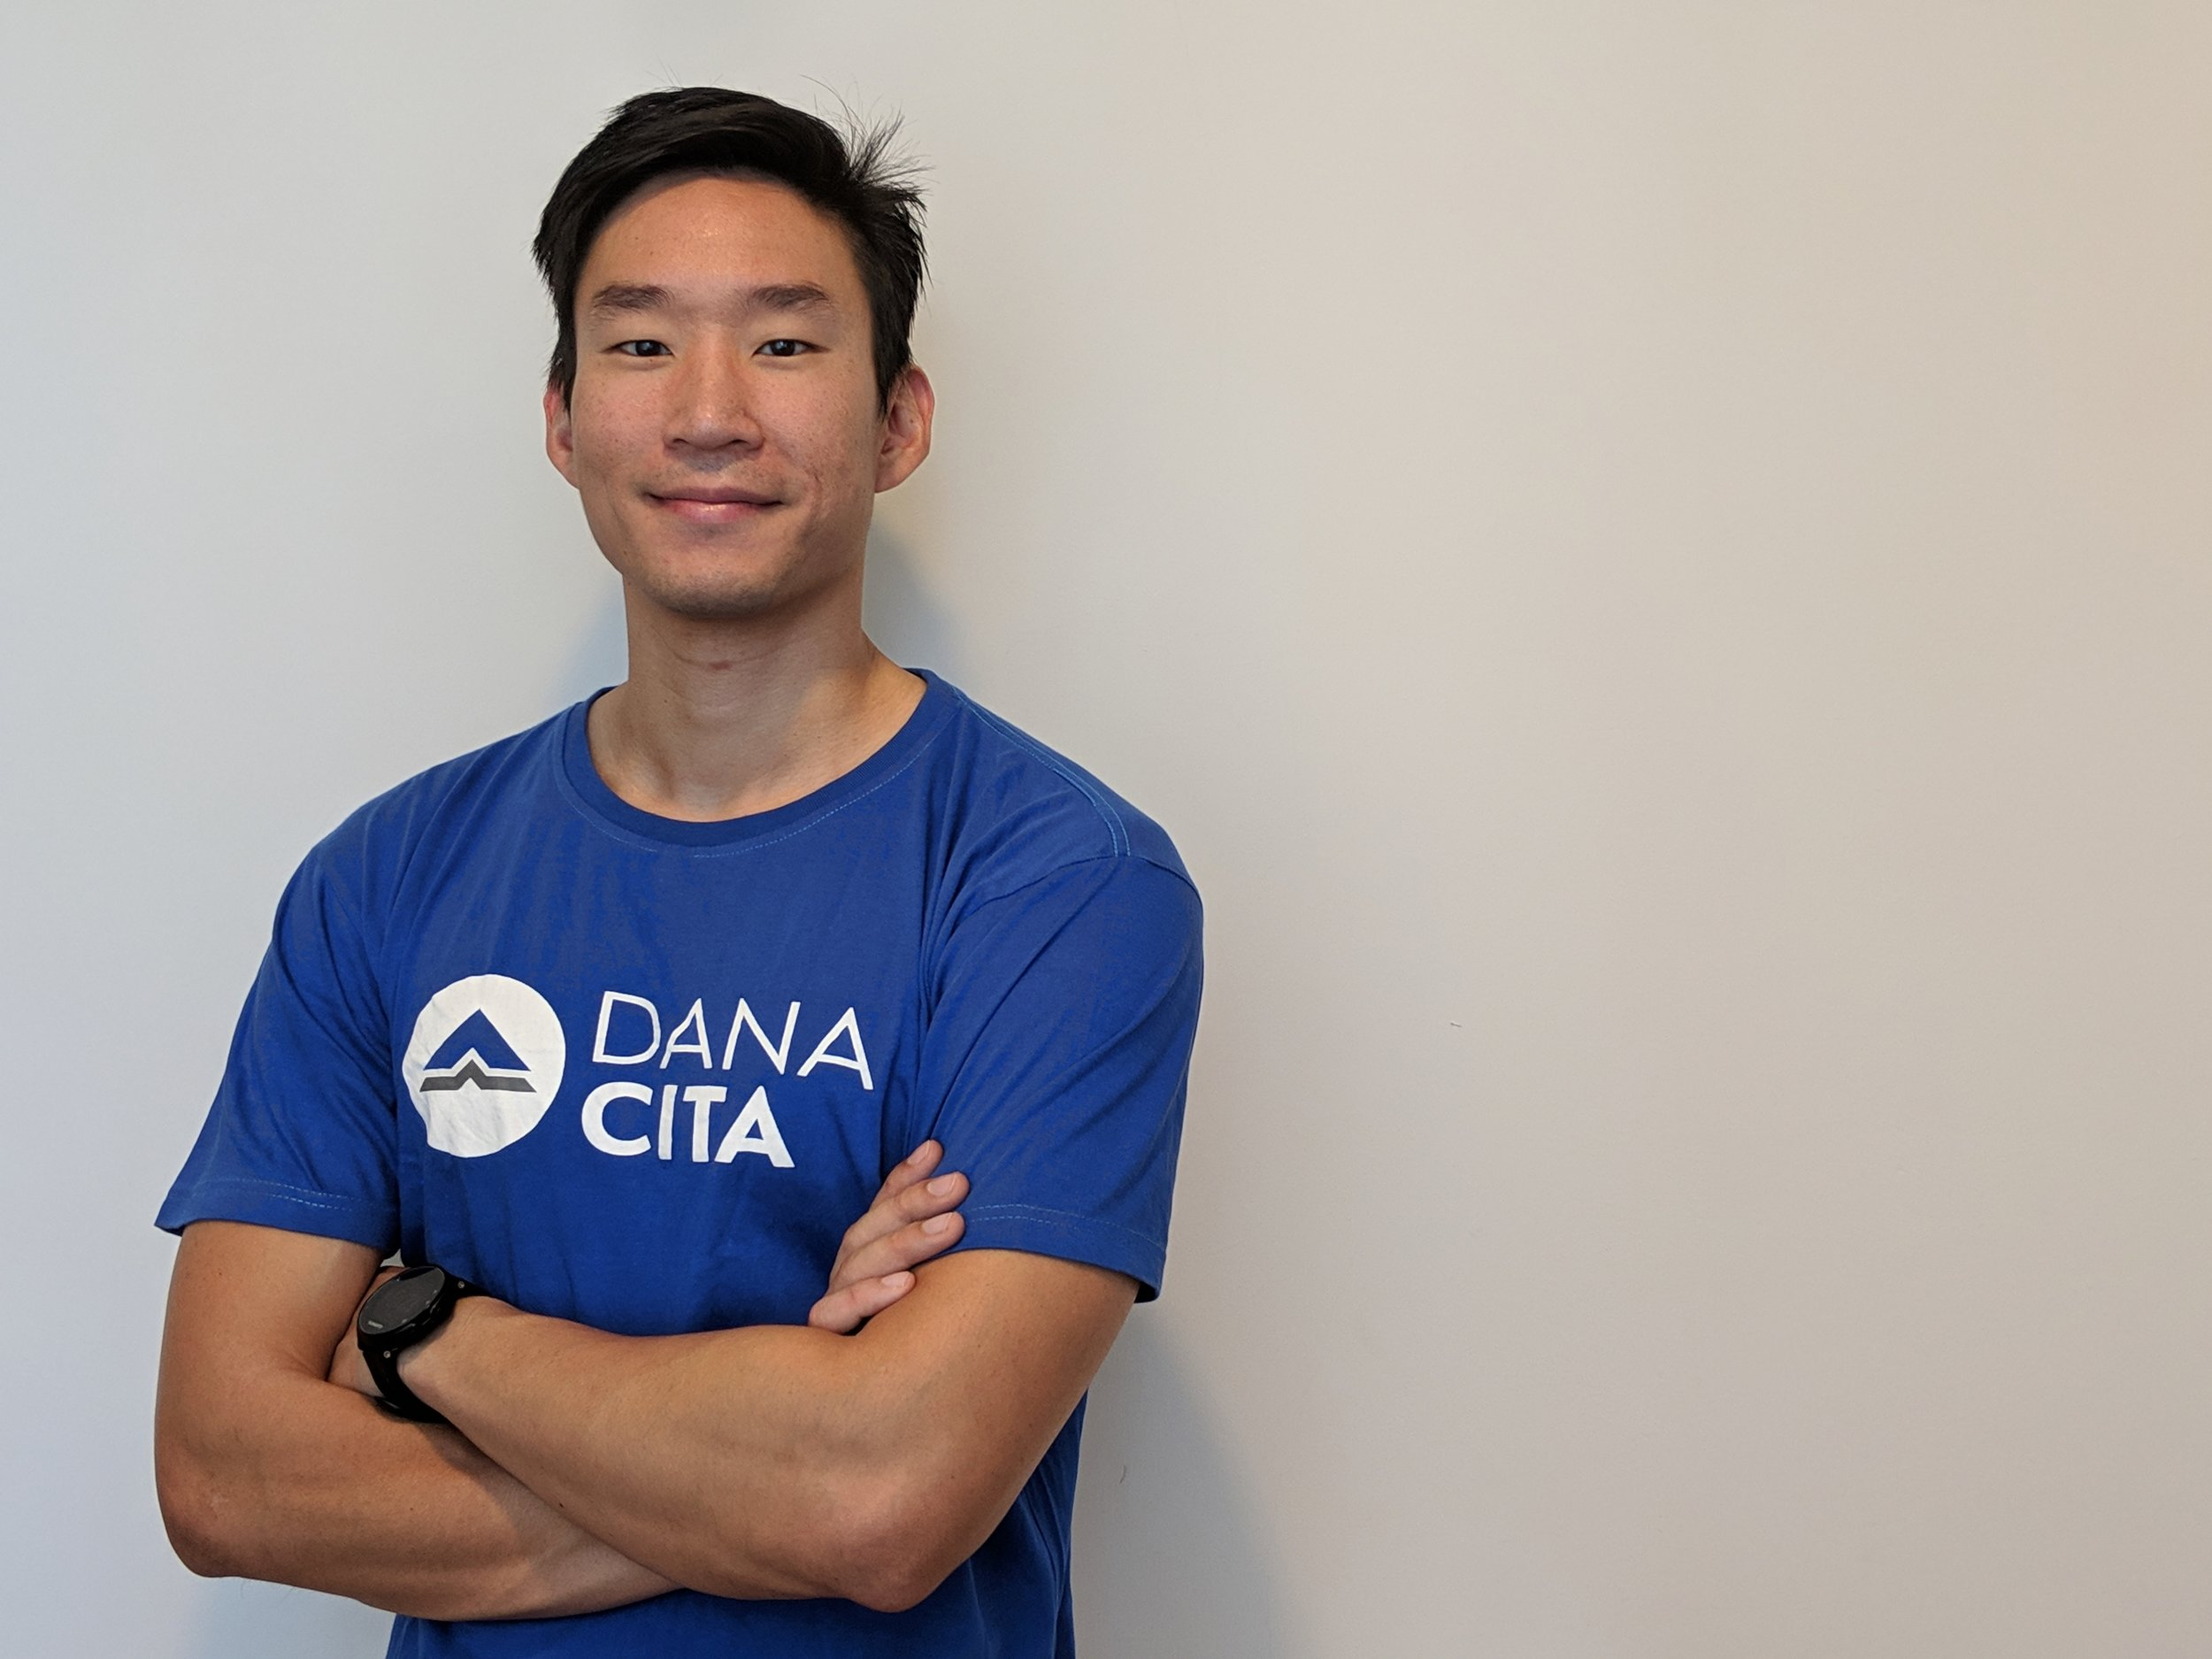 Naga Tan  is the Co-Founder of  Dana Cita     Bukas.ph , a FinTech startup backed by Y Combinator and Monk's Hill Ventures on a mission to make education affordable in Southeast Asia.